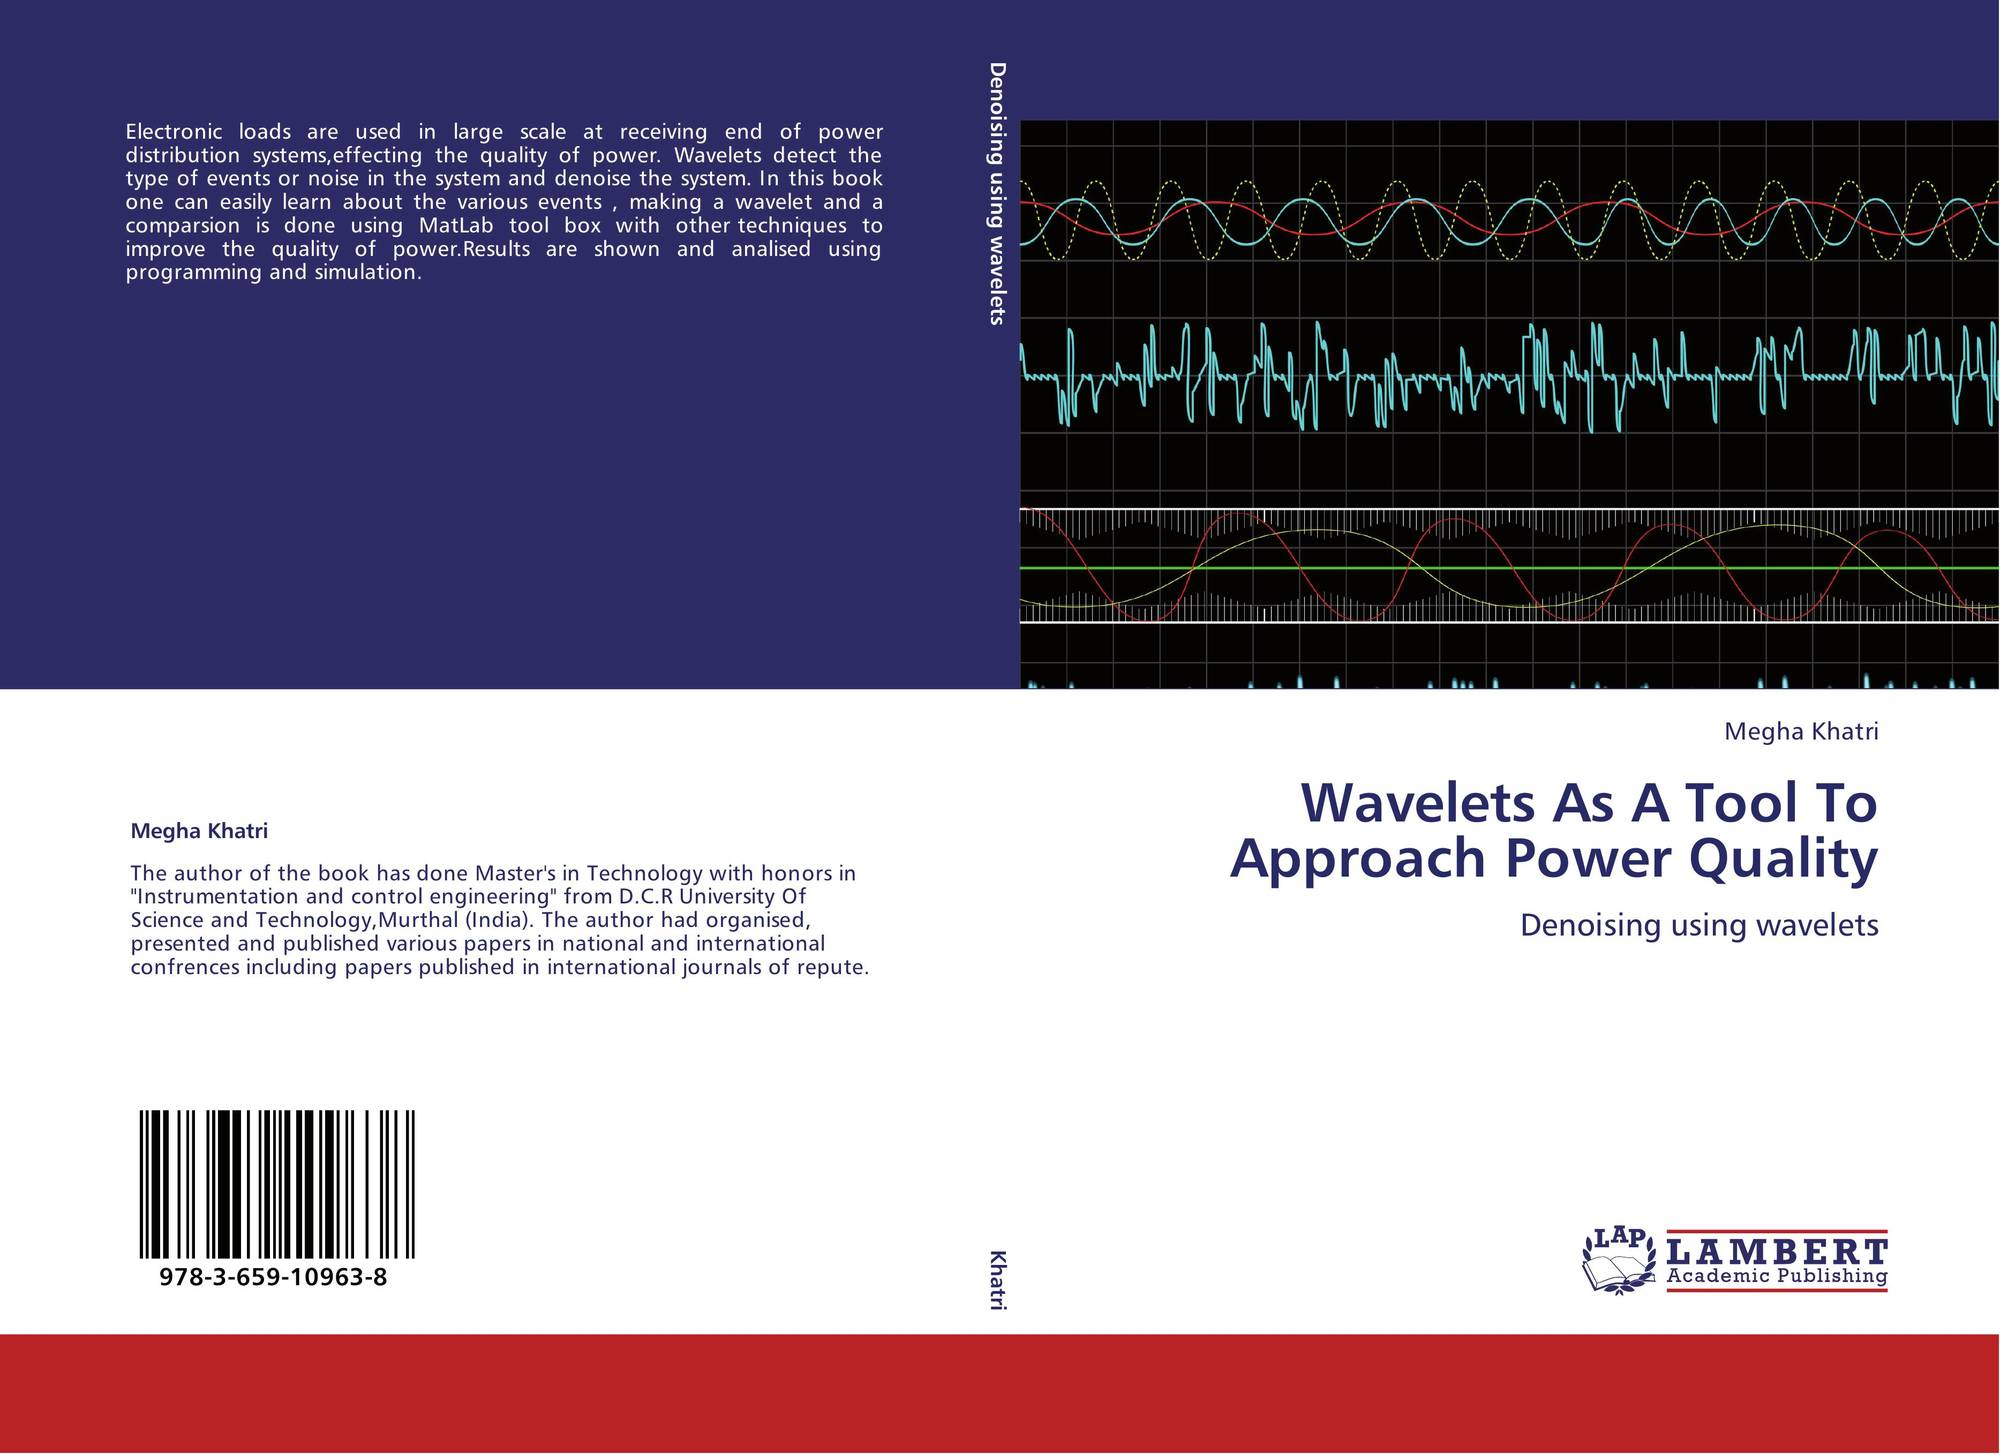 Wavelets As A Tool To Approach Power Quality, 978-3-659-10963-8